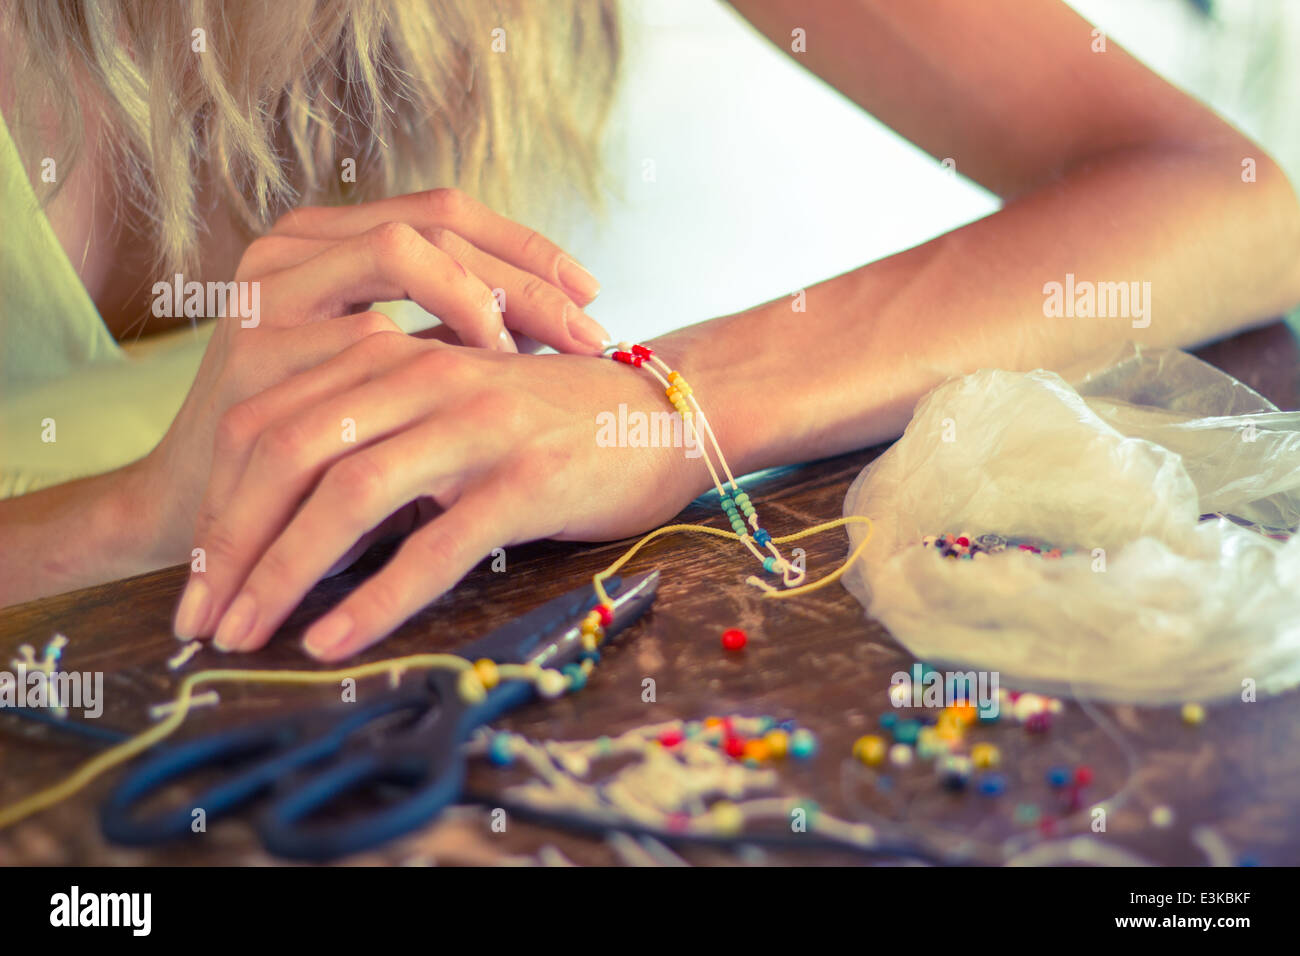 woman hands making craft crafting hobby bracelet colorful beads rope - Stock Image